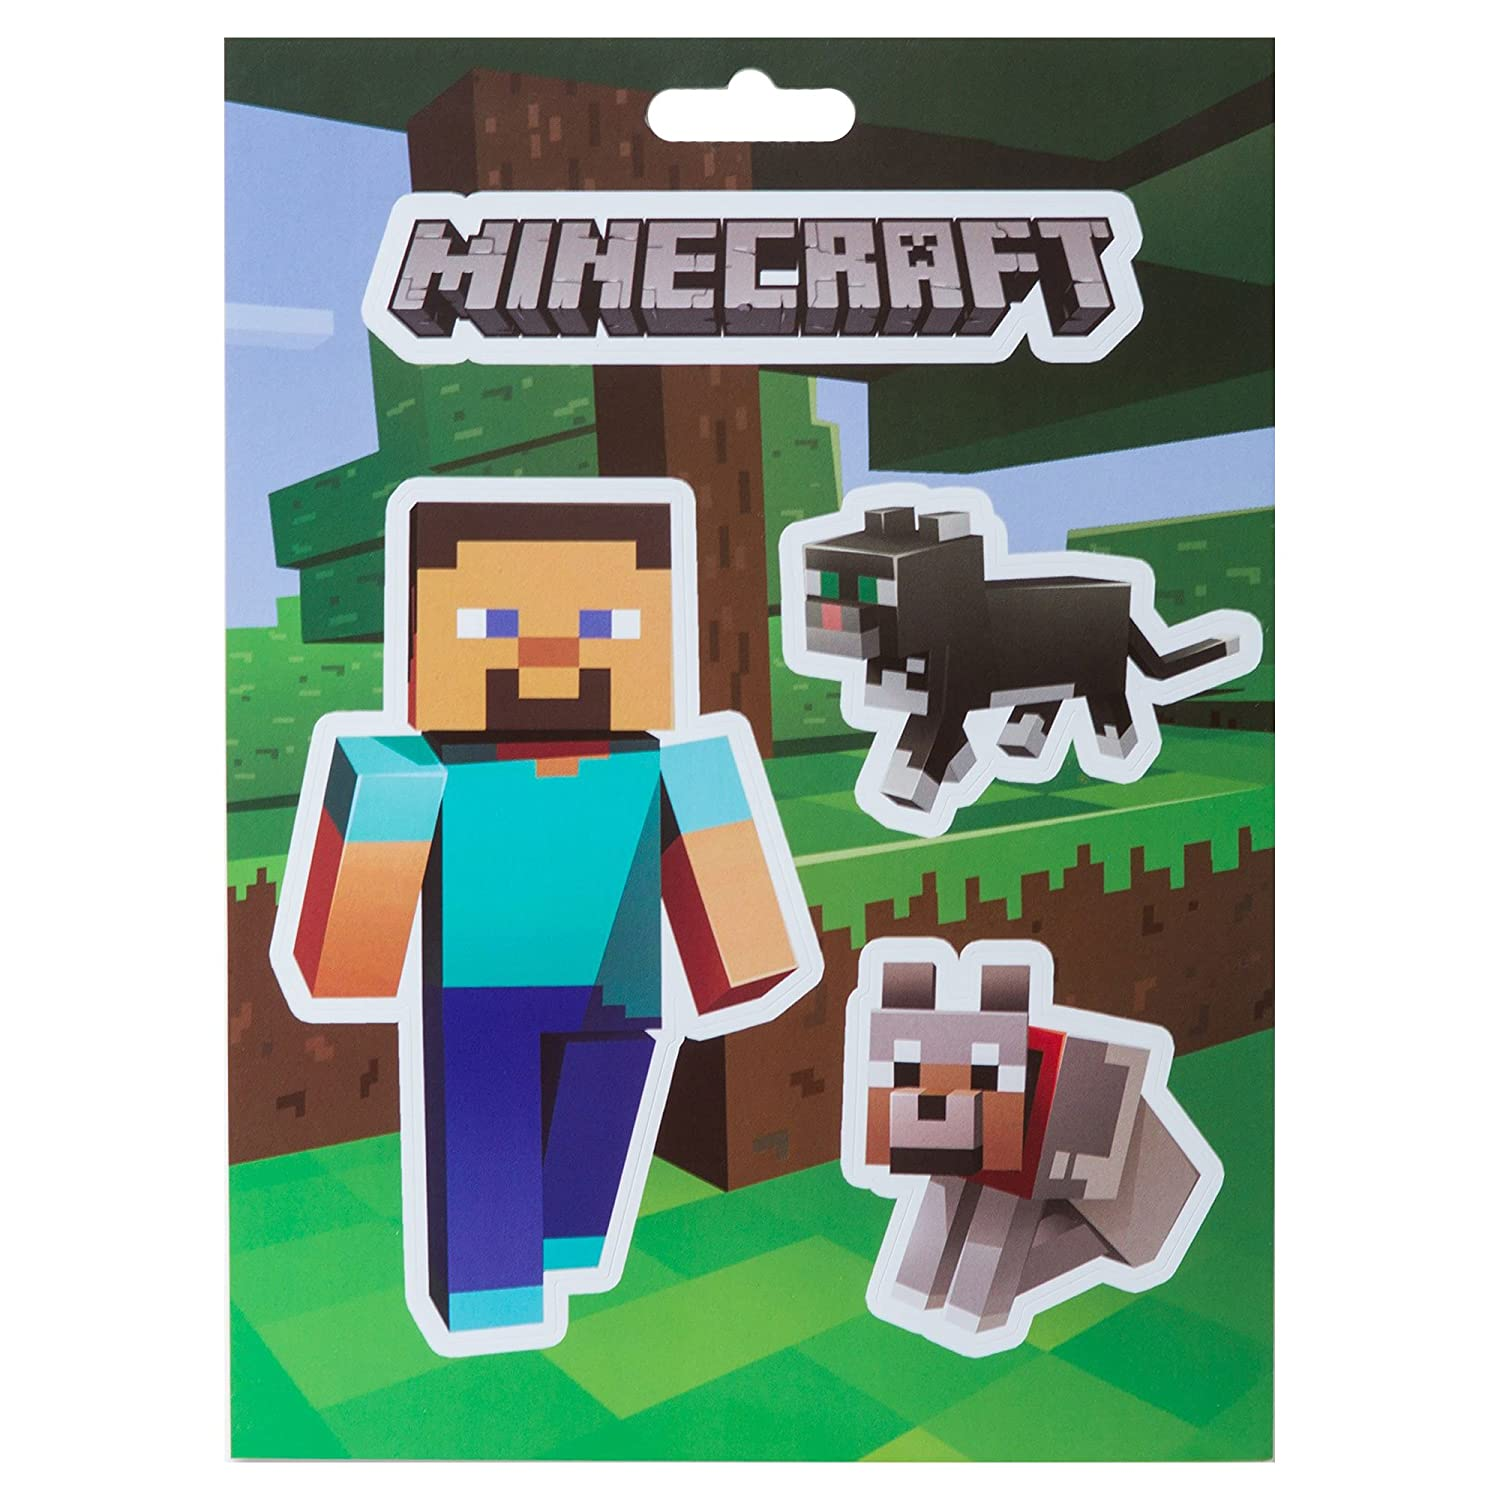 17 Stickers SG/_B00TM5VDGE/_US JINX Minecraft Sticker Party Pack Steve Pets, Baby Animals, Mob Nether, Mob Caves